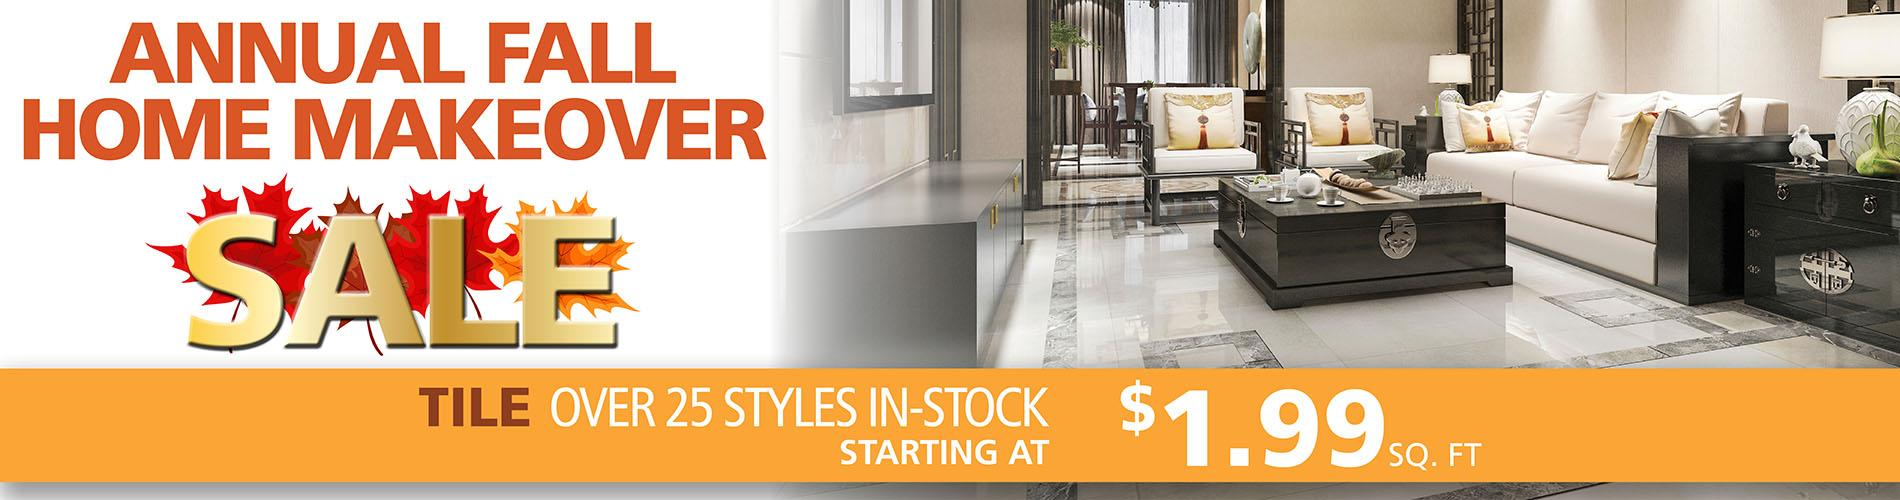 We have over 25 styles of tile in-stock starting at $1.99 sq. ft during our Annual Fall Home Makeover Sale